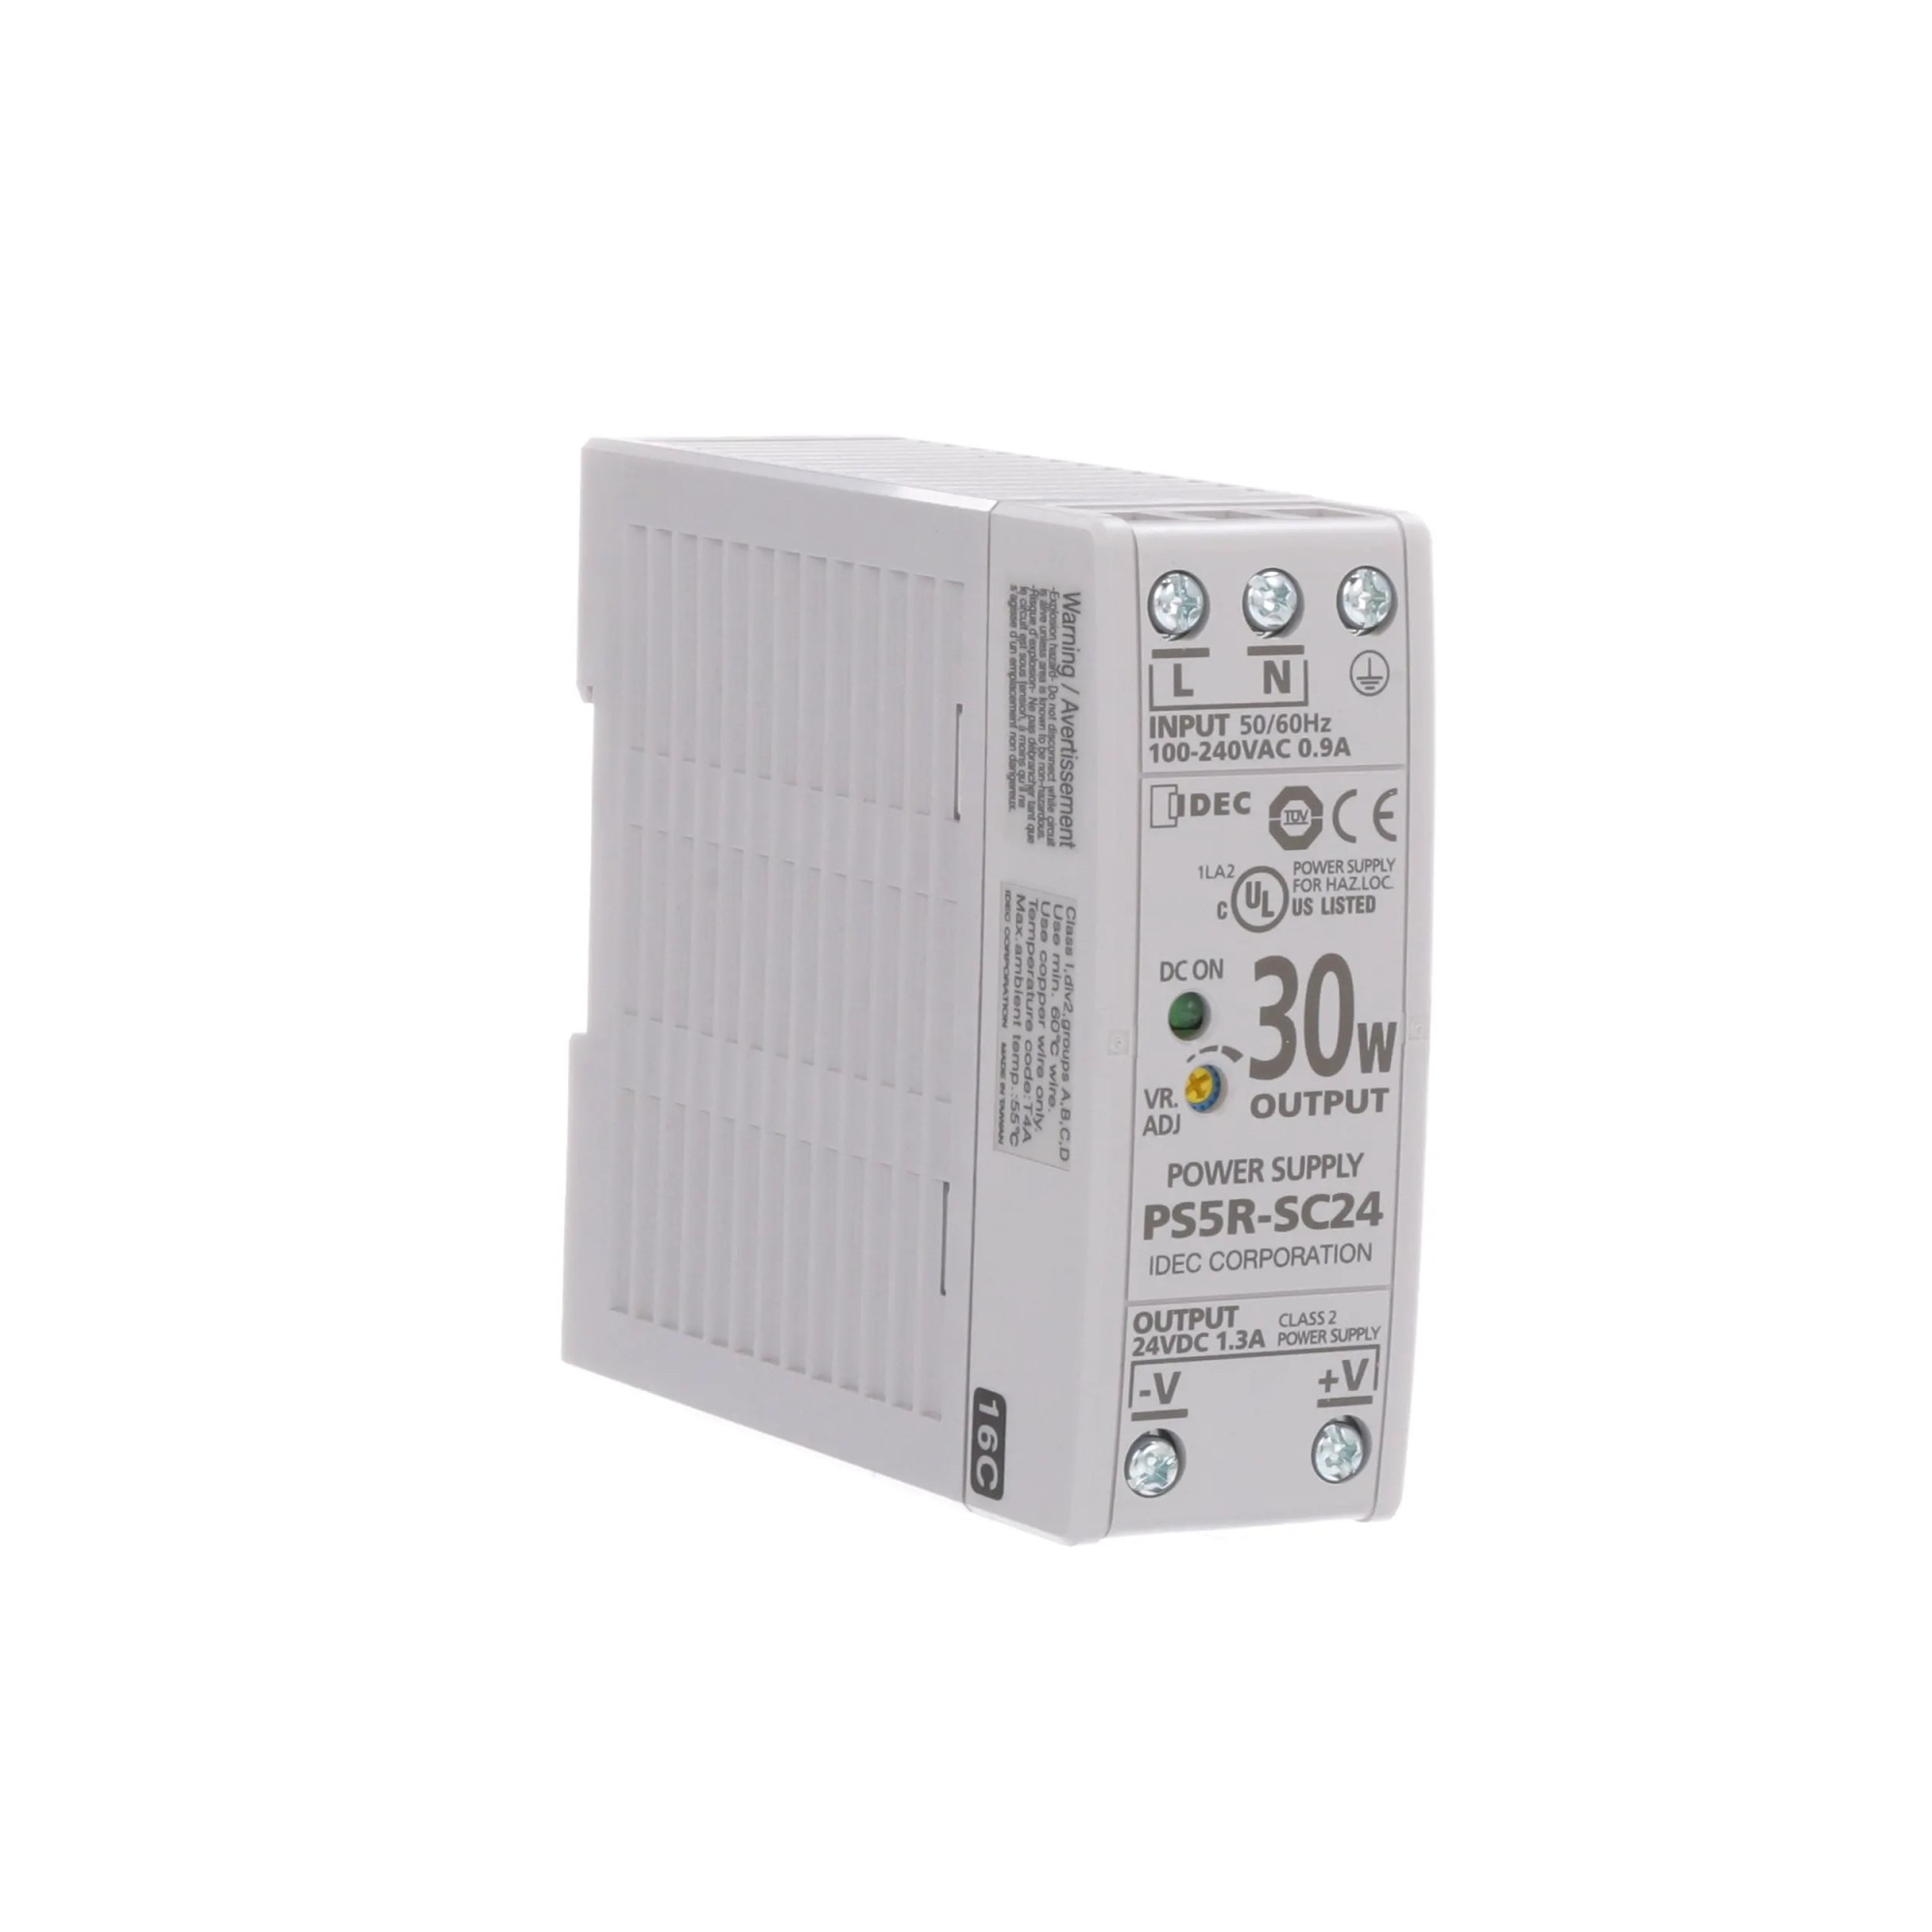 hight resolution of idec corporation ps5r sc24 power supply ac dc 24v 1 3a 85 264v in enclosed din rail mount 31w ps5r series allied electronics automation